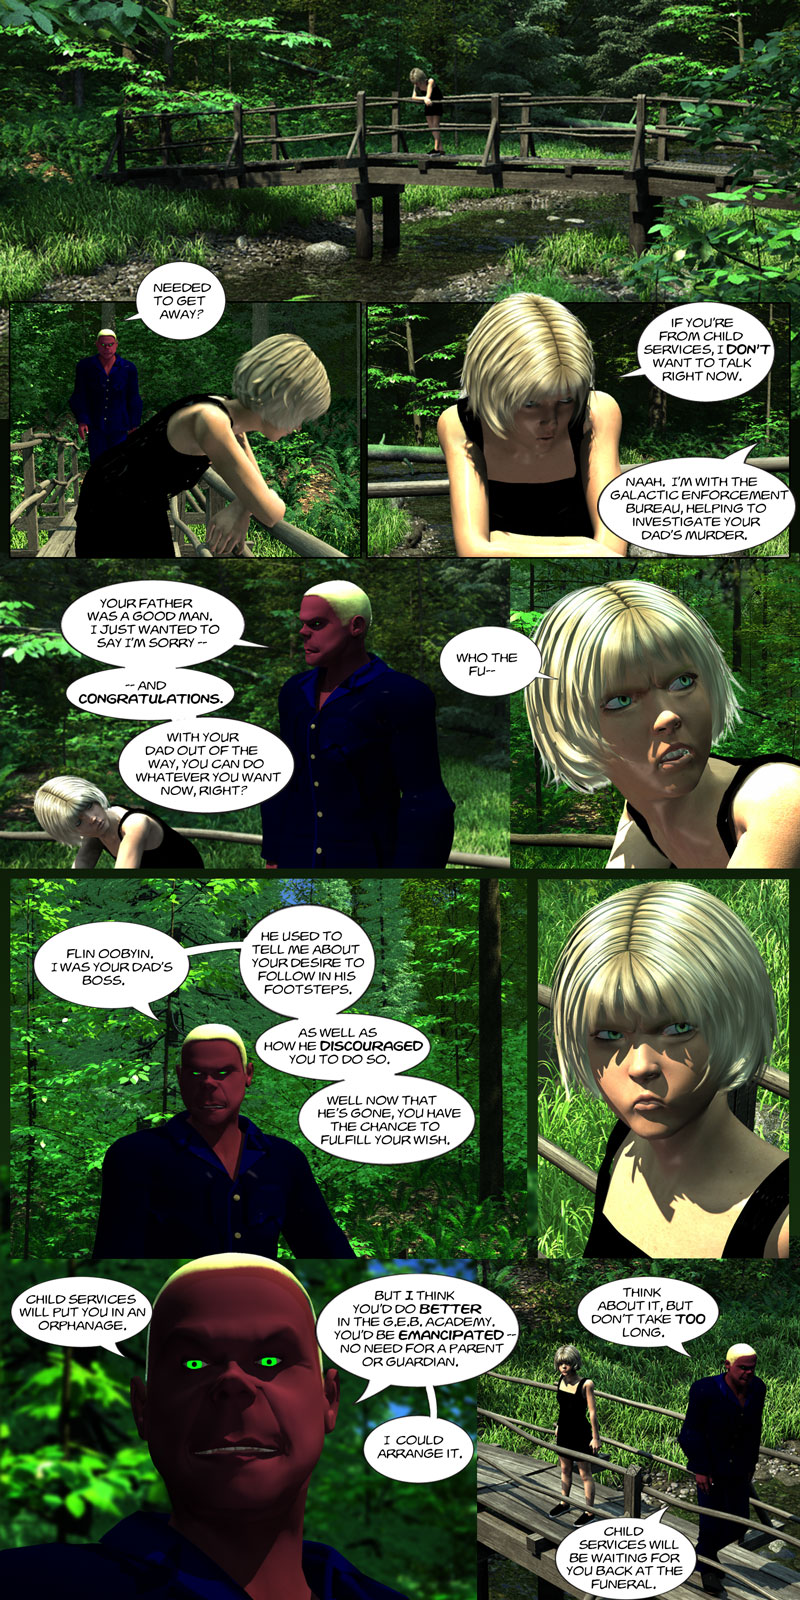 Chapter 1, page 16 – Flin invites Tirin to join the Galactic Enforcement Bureau